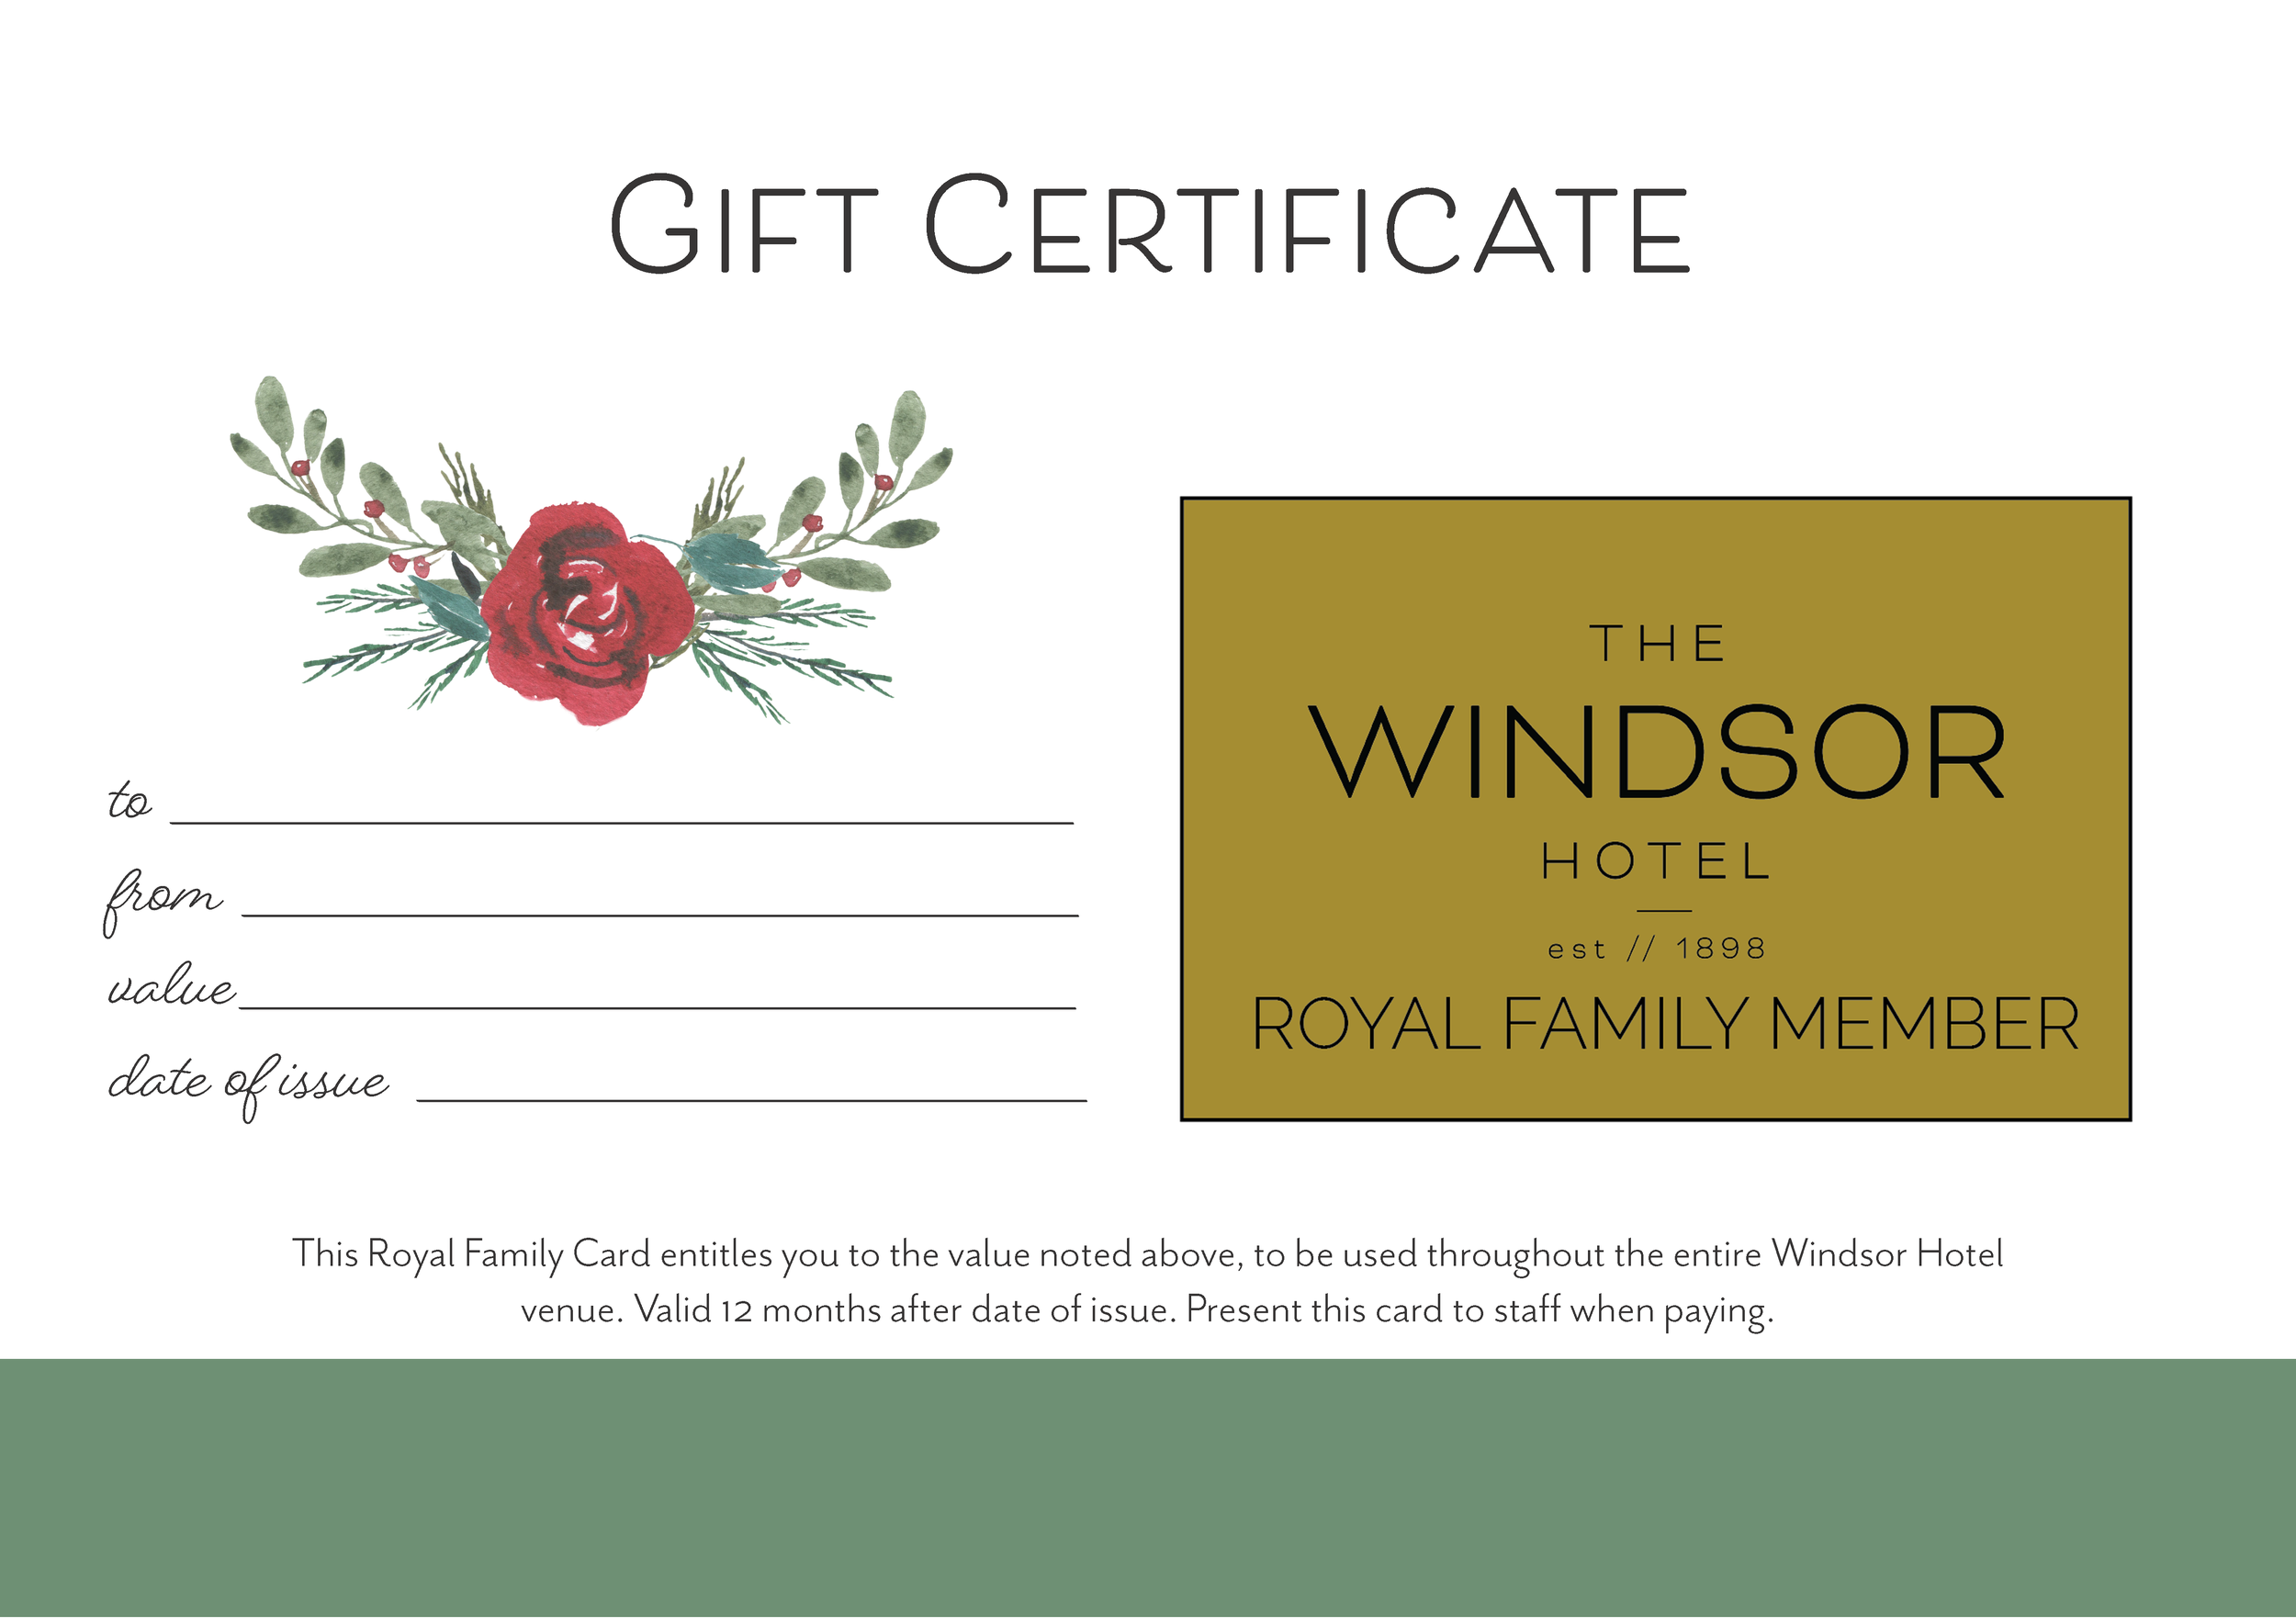 Gift Voucher XMAS ong.png